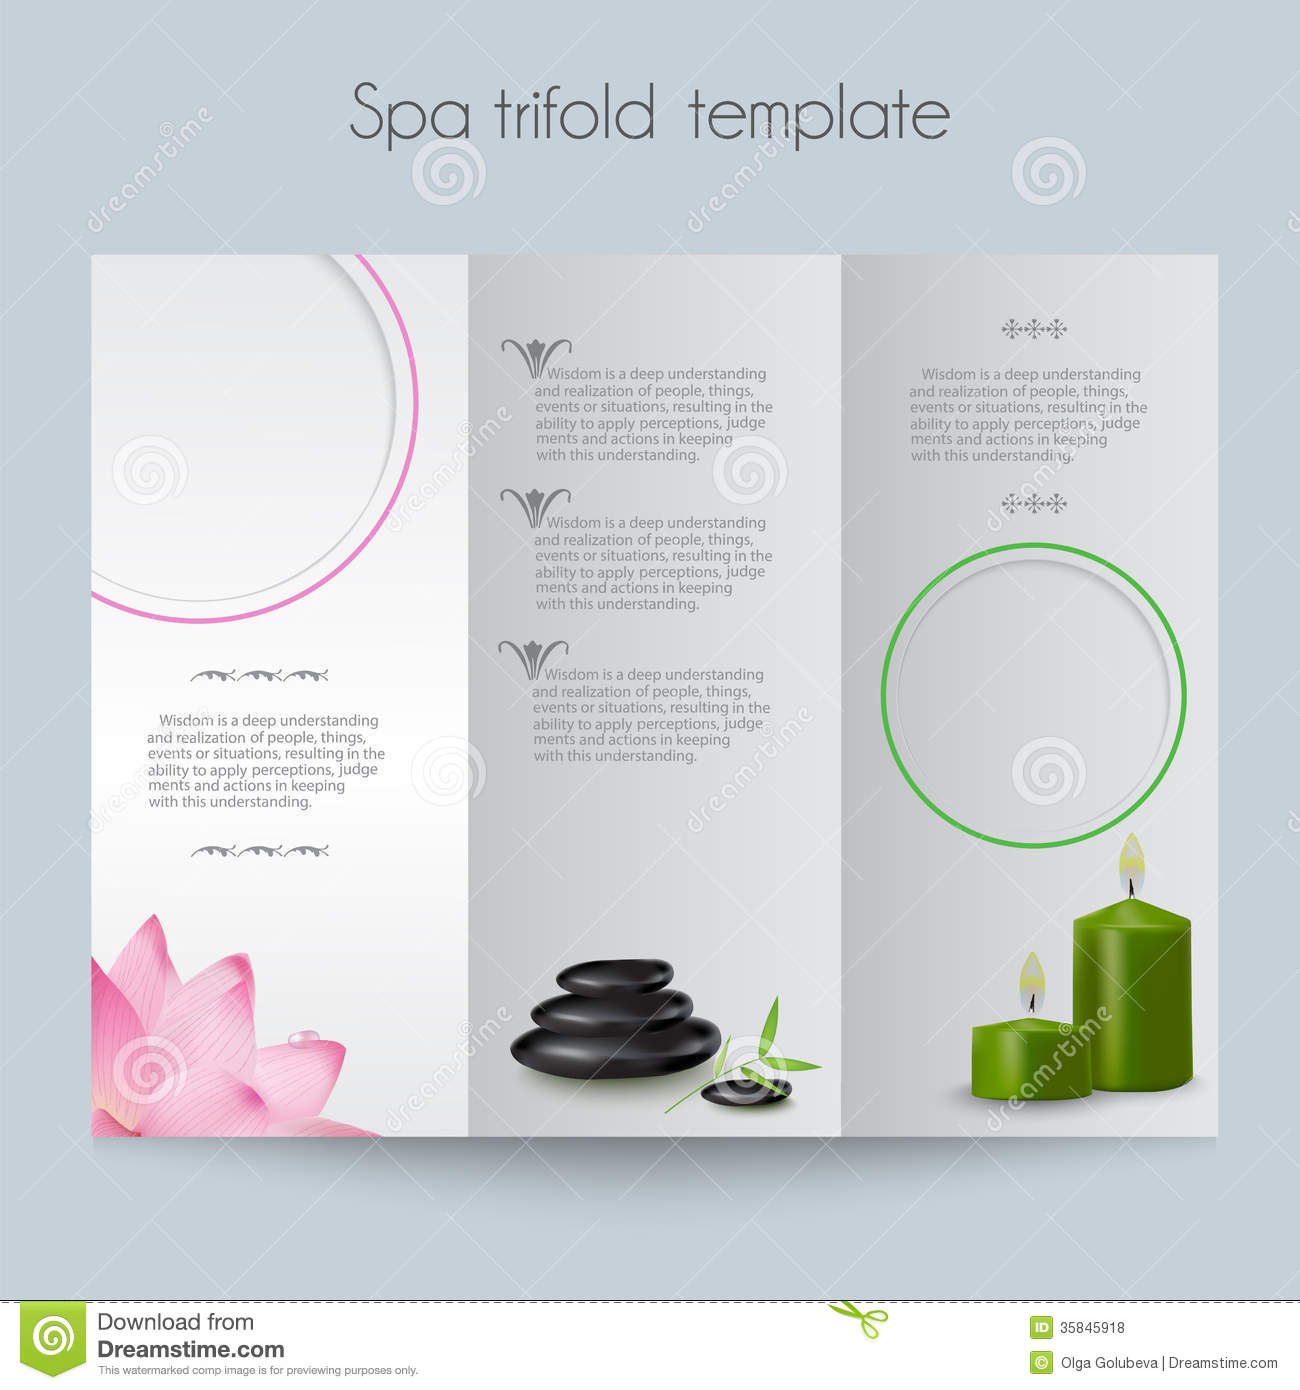 editable brochure templates free - tri fold spa brochure mock up royalty free stock photos